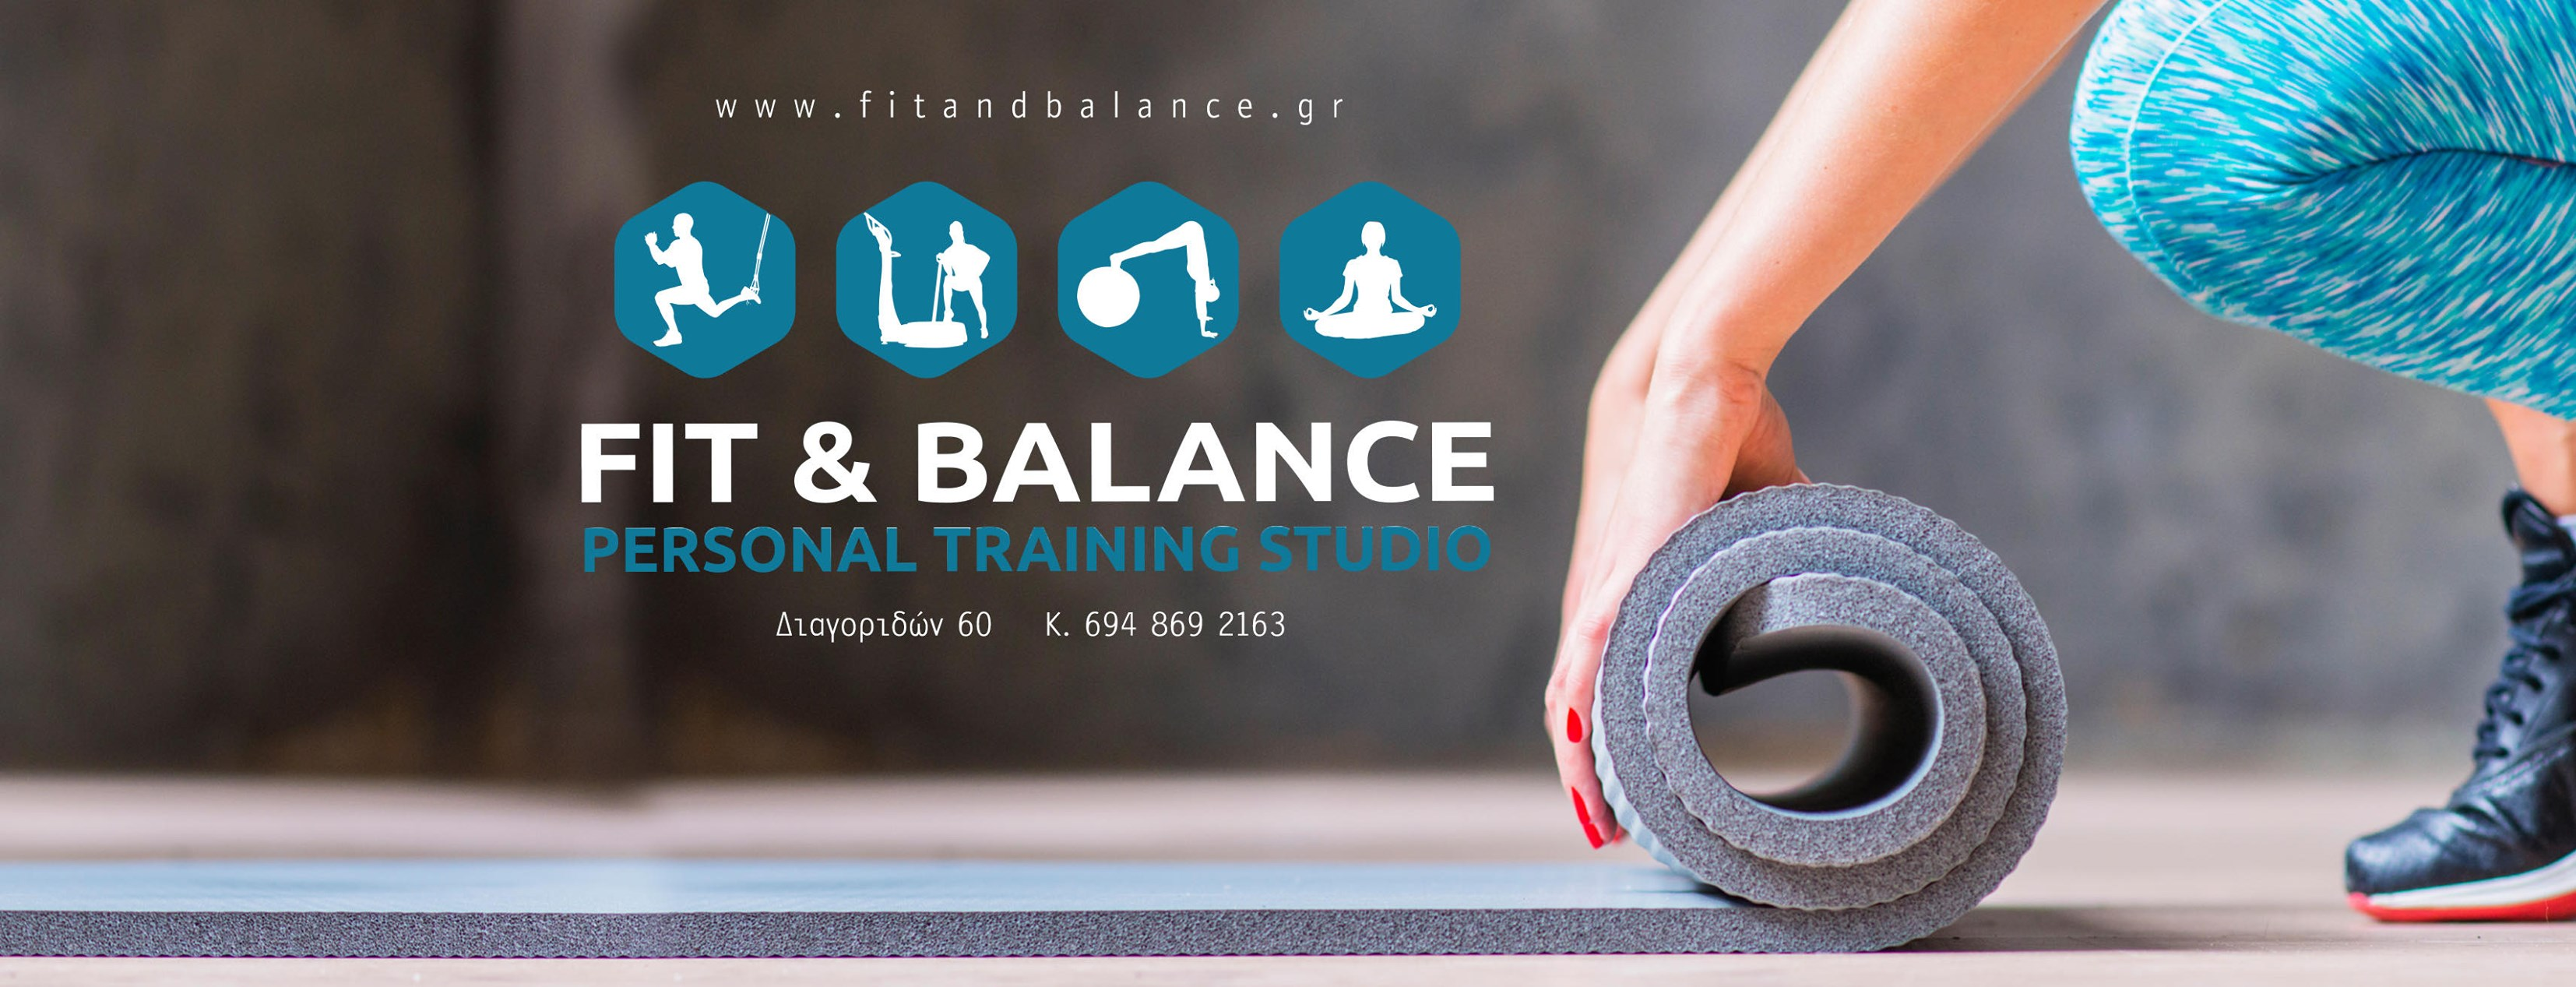 FIT & BALANCE PERSONAL TRAINING STUDIO